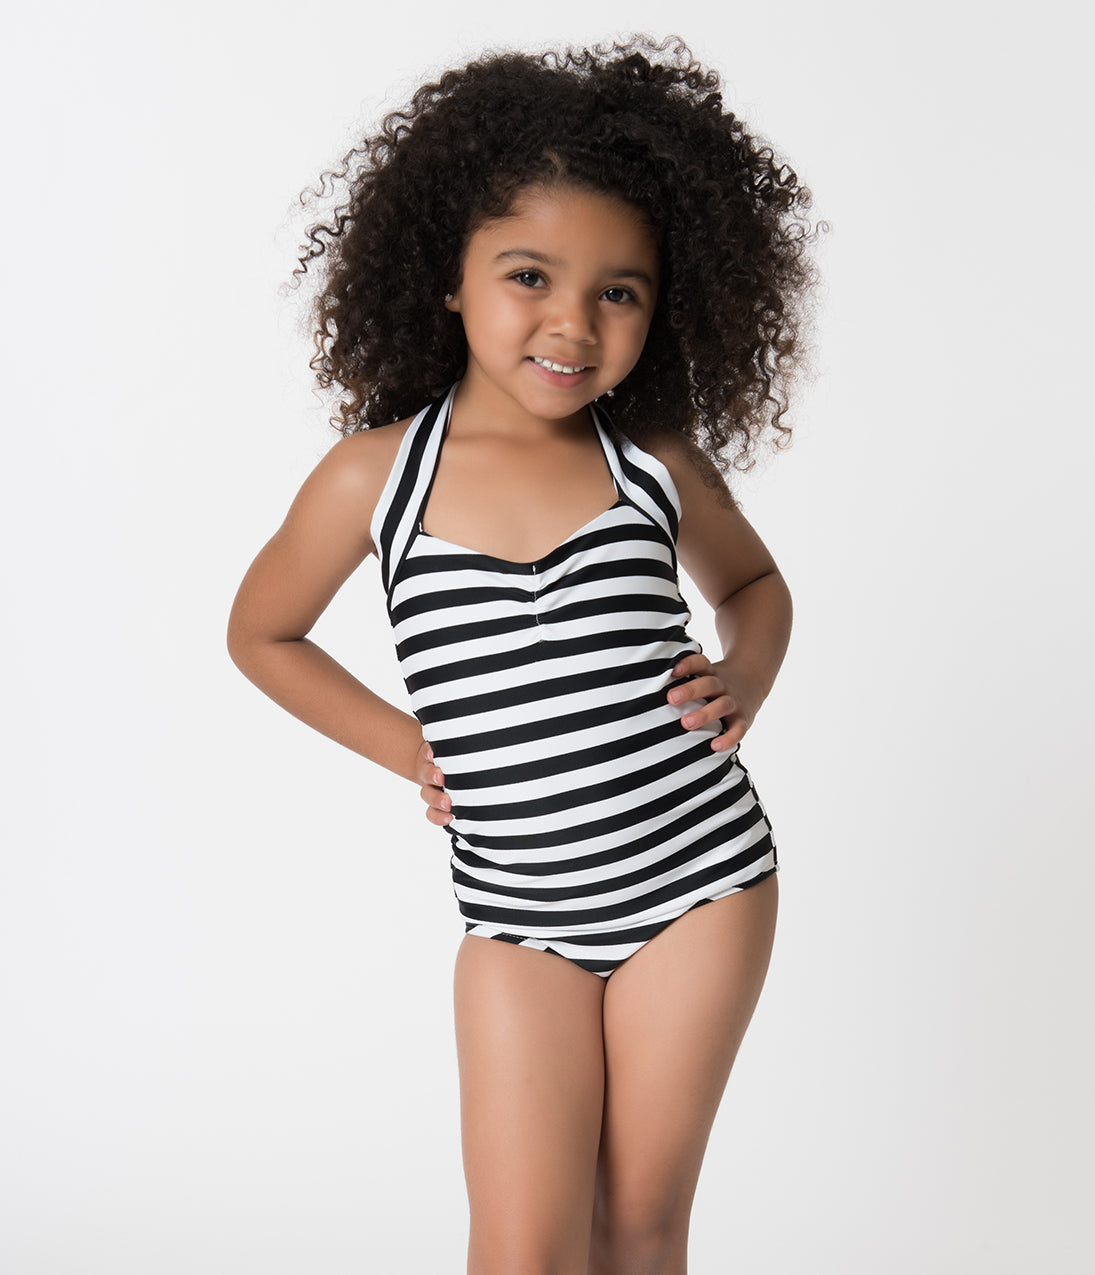 Kids 1950s Clothing & Costumes: Girls, Boys, Toddlers Retro Style Black  White Striped Halter Top Kids One Piece Swimsuit $30.00 AT vintagedancer.com